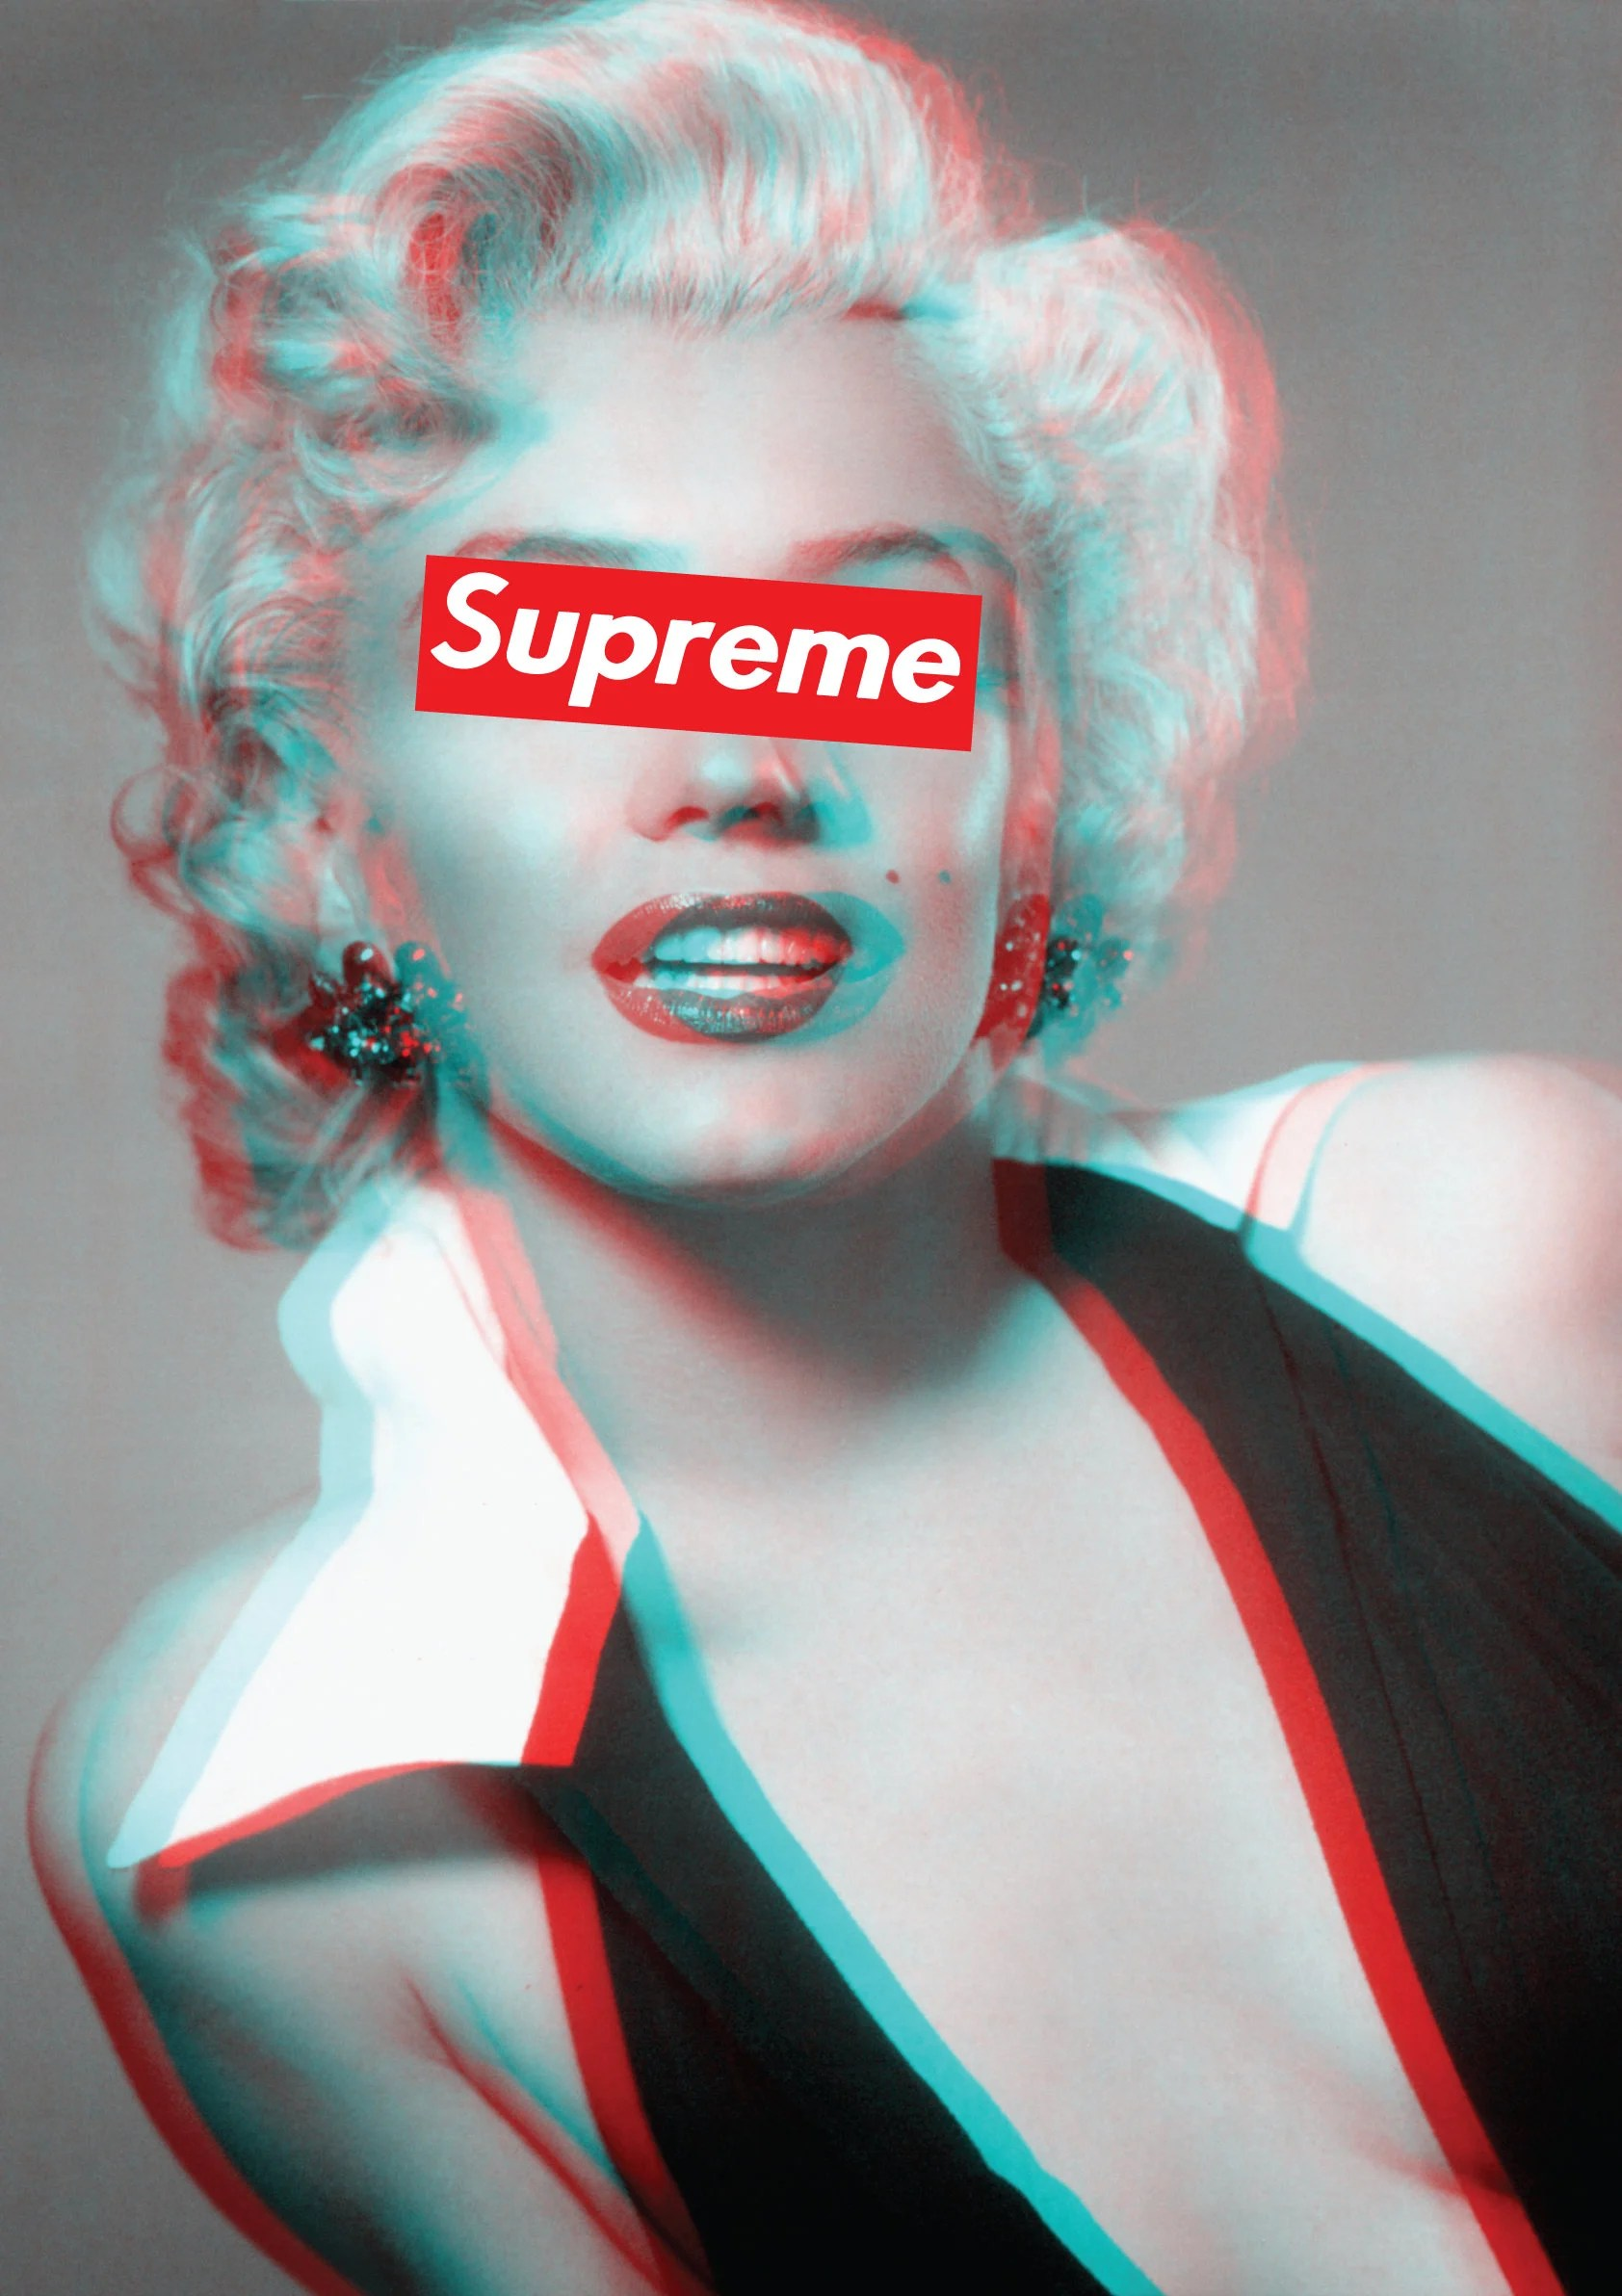 Skateboard Girl Wallpaper Marilyn Monroe Supreme Classic Iconic Poster A1 Large Glossy